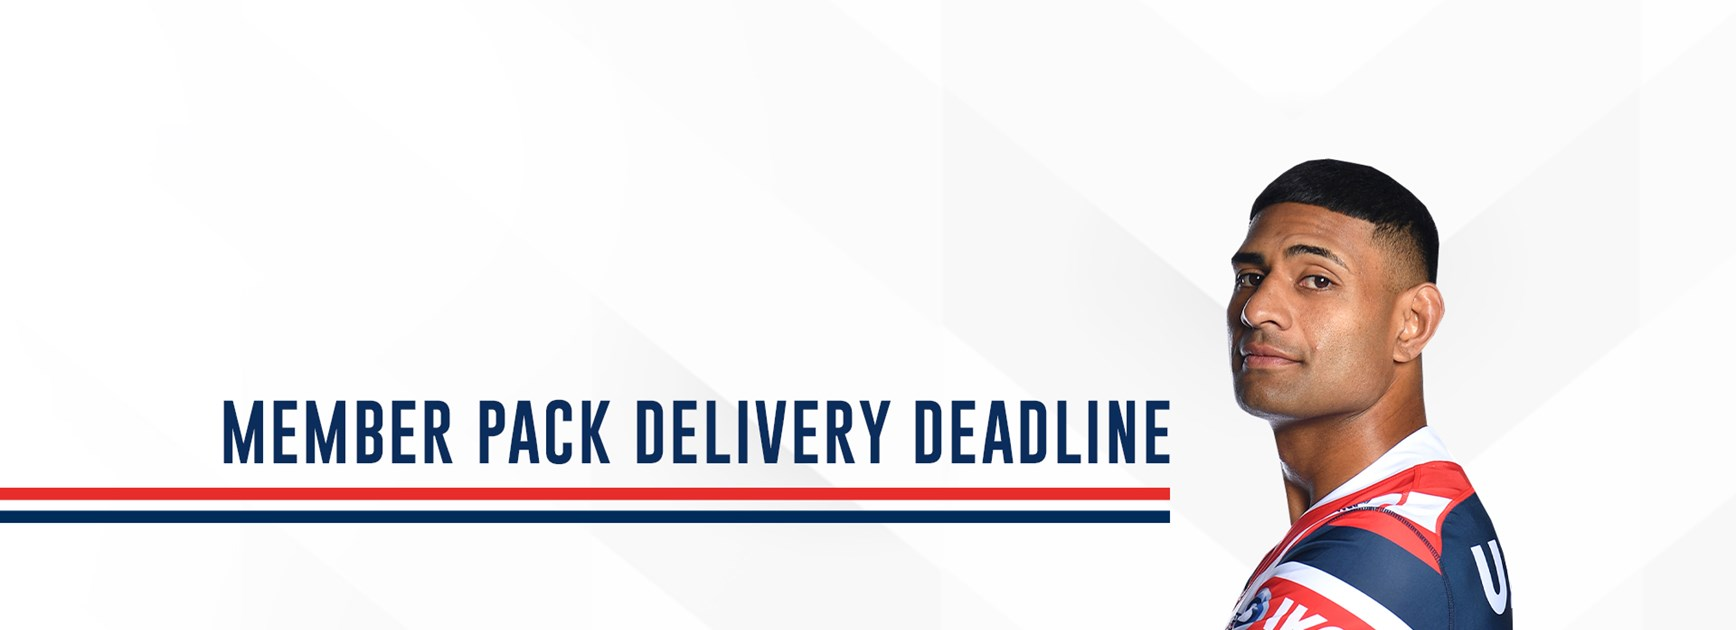 Roosters Member Pack Delivery Deadline coming soon!